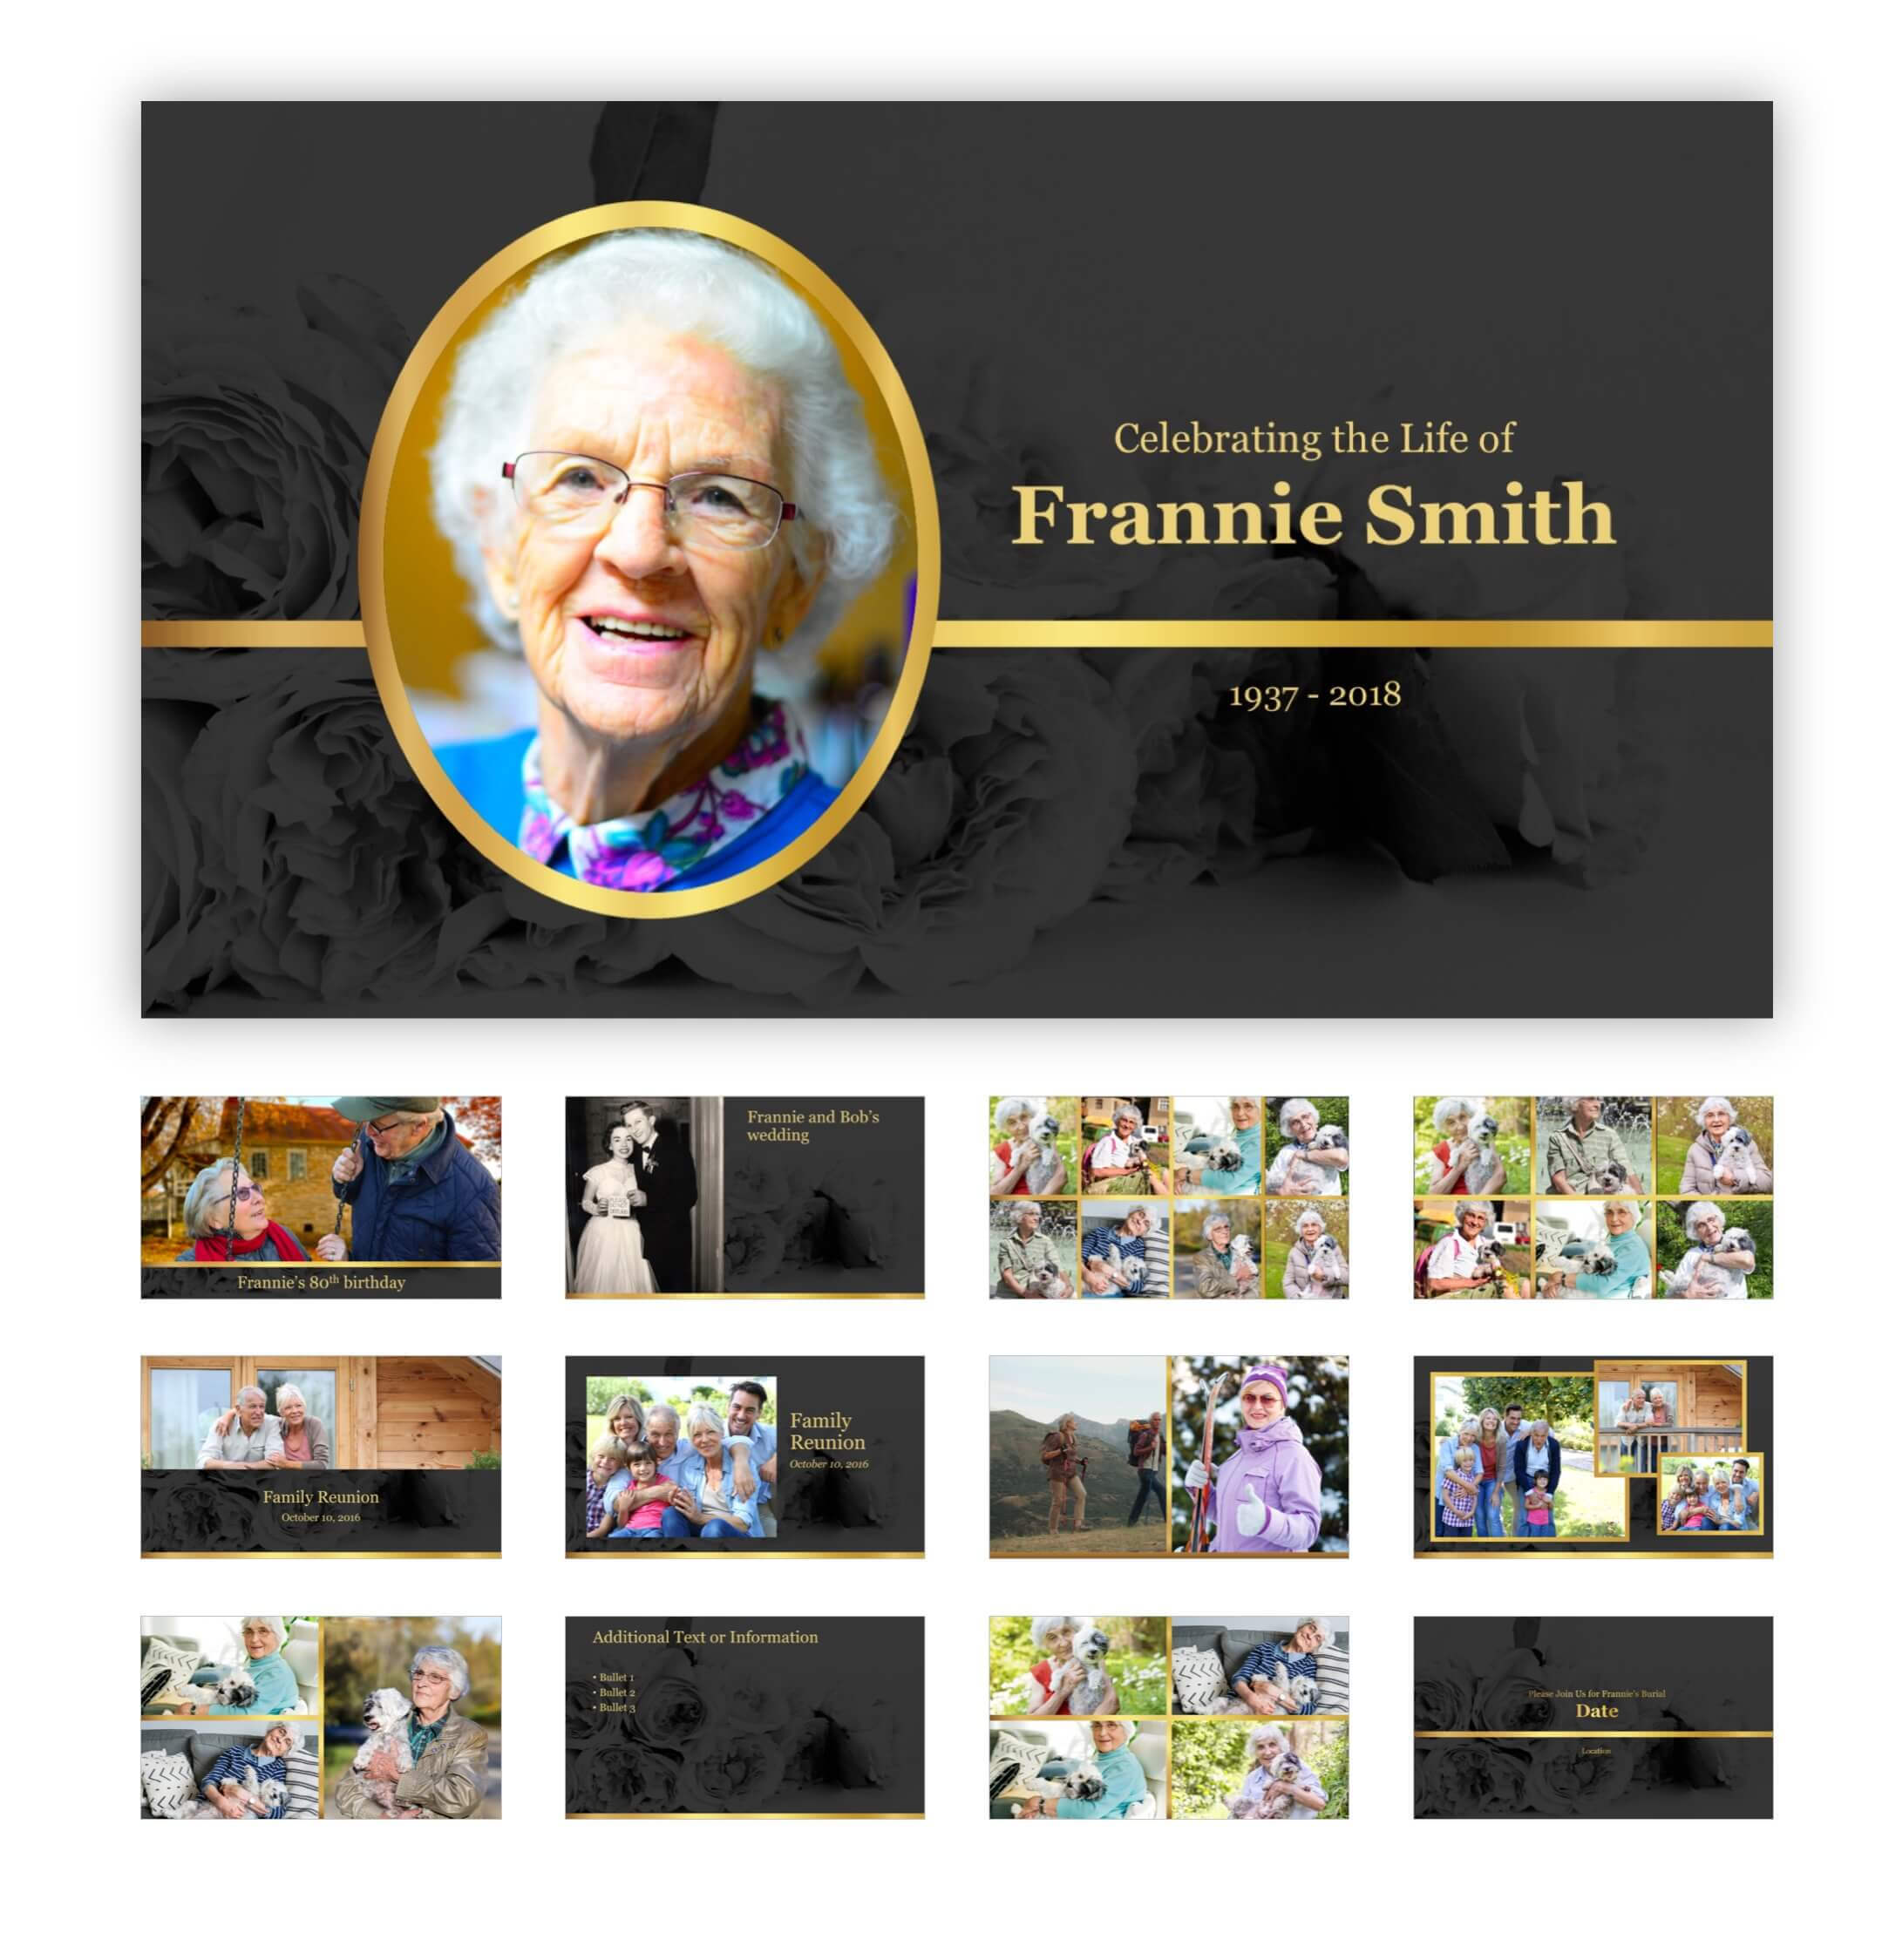 Best Funeral Powerpoint Templates Of 2019 | Adrienne Johnston In Funeral Powerpoint Templates